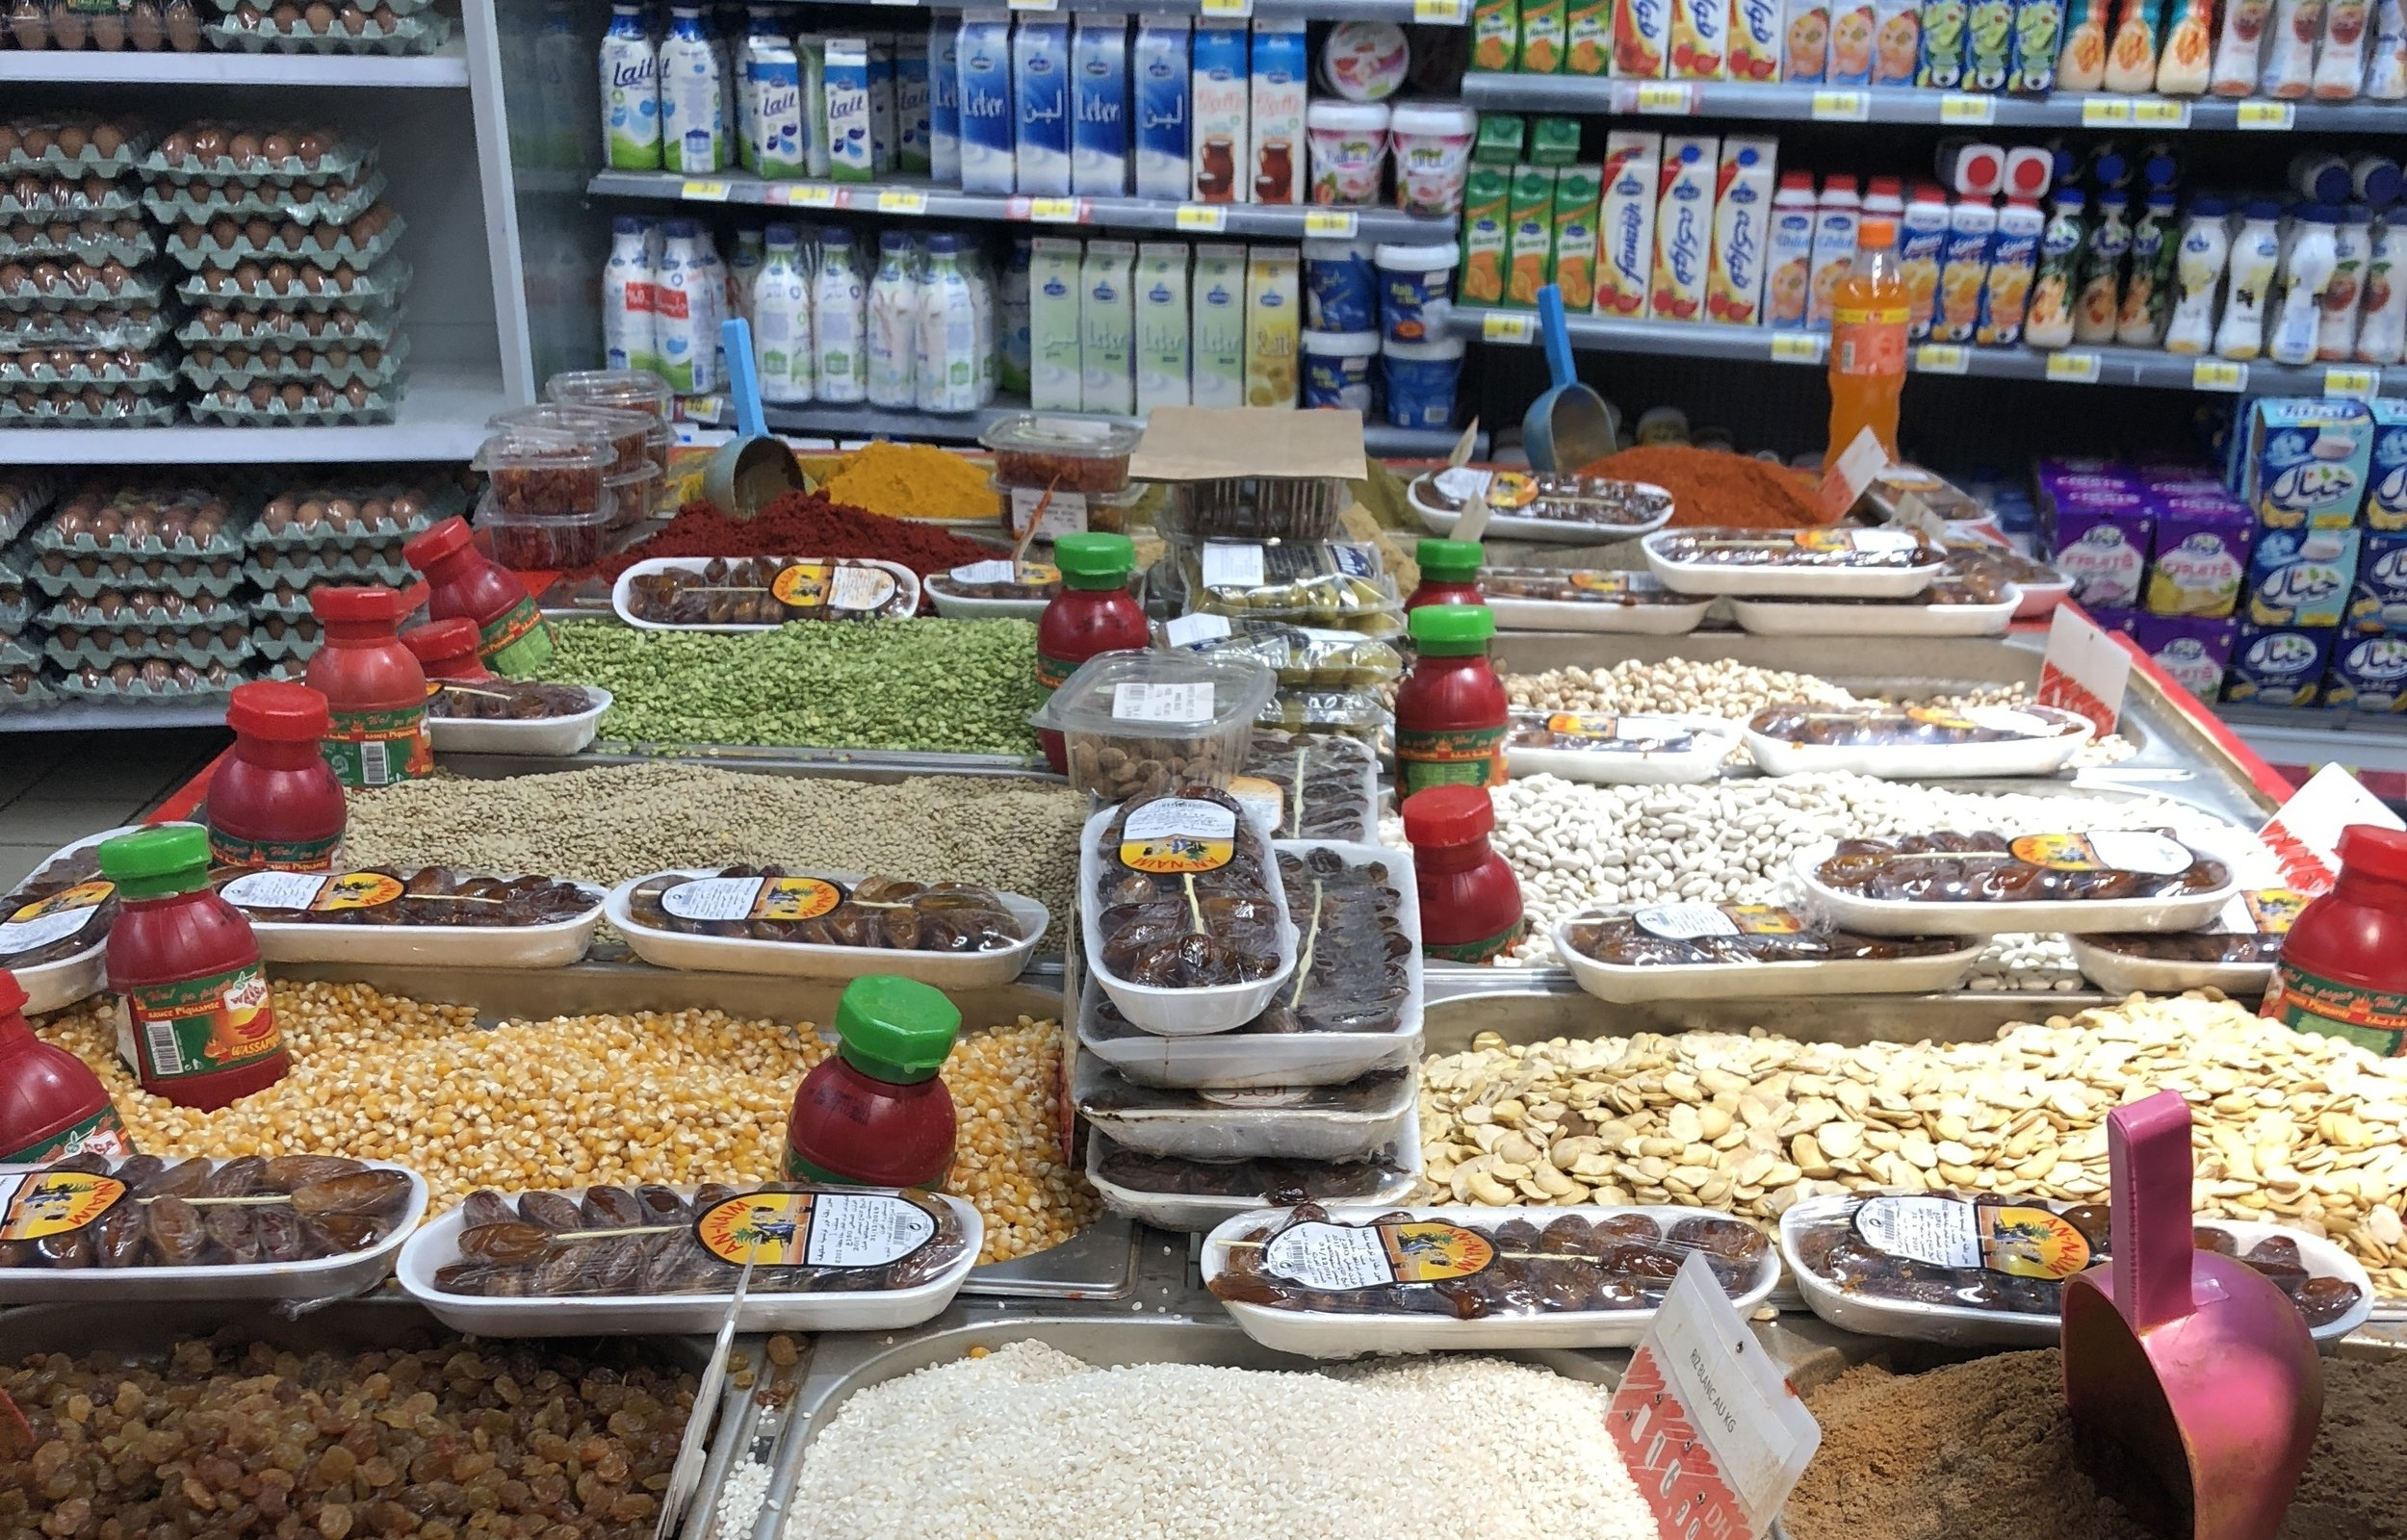 Dried fruits and grains, and in the background a refrigerated case of mystifying dairy products.